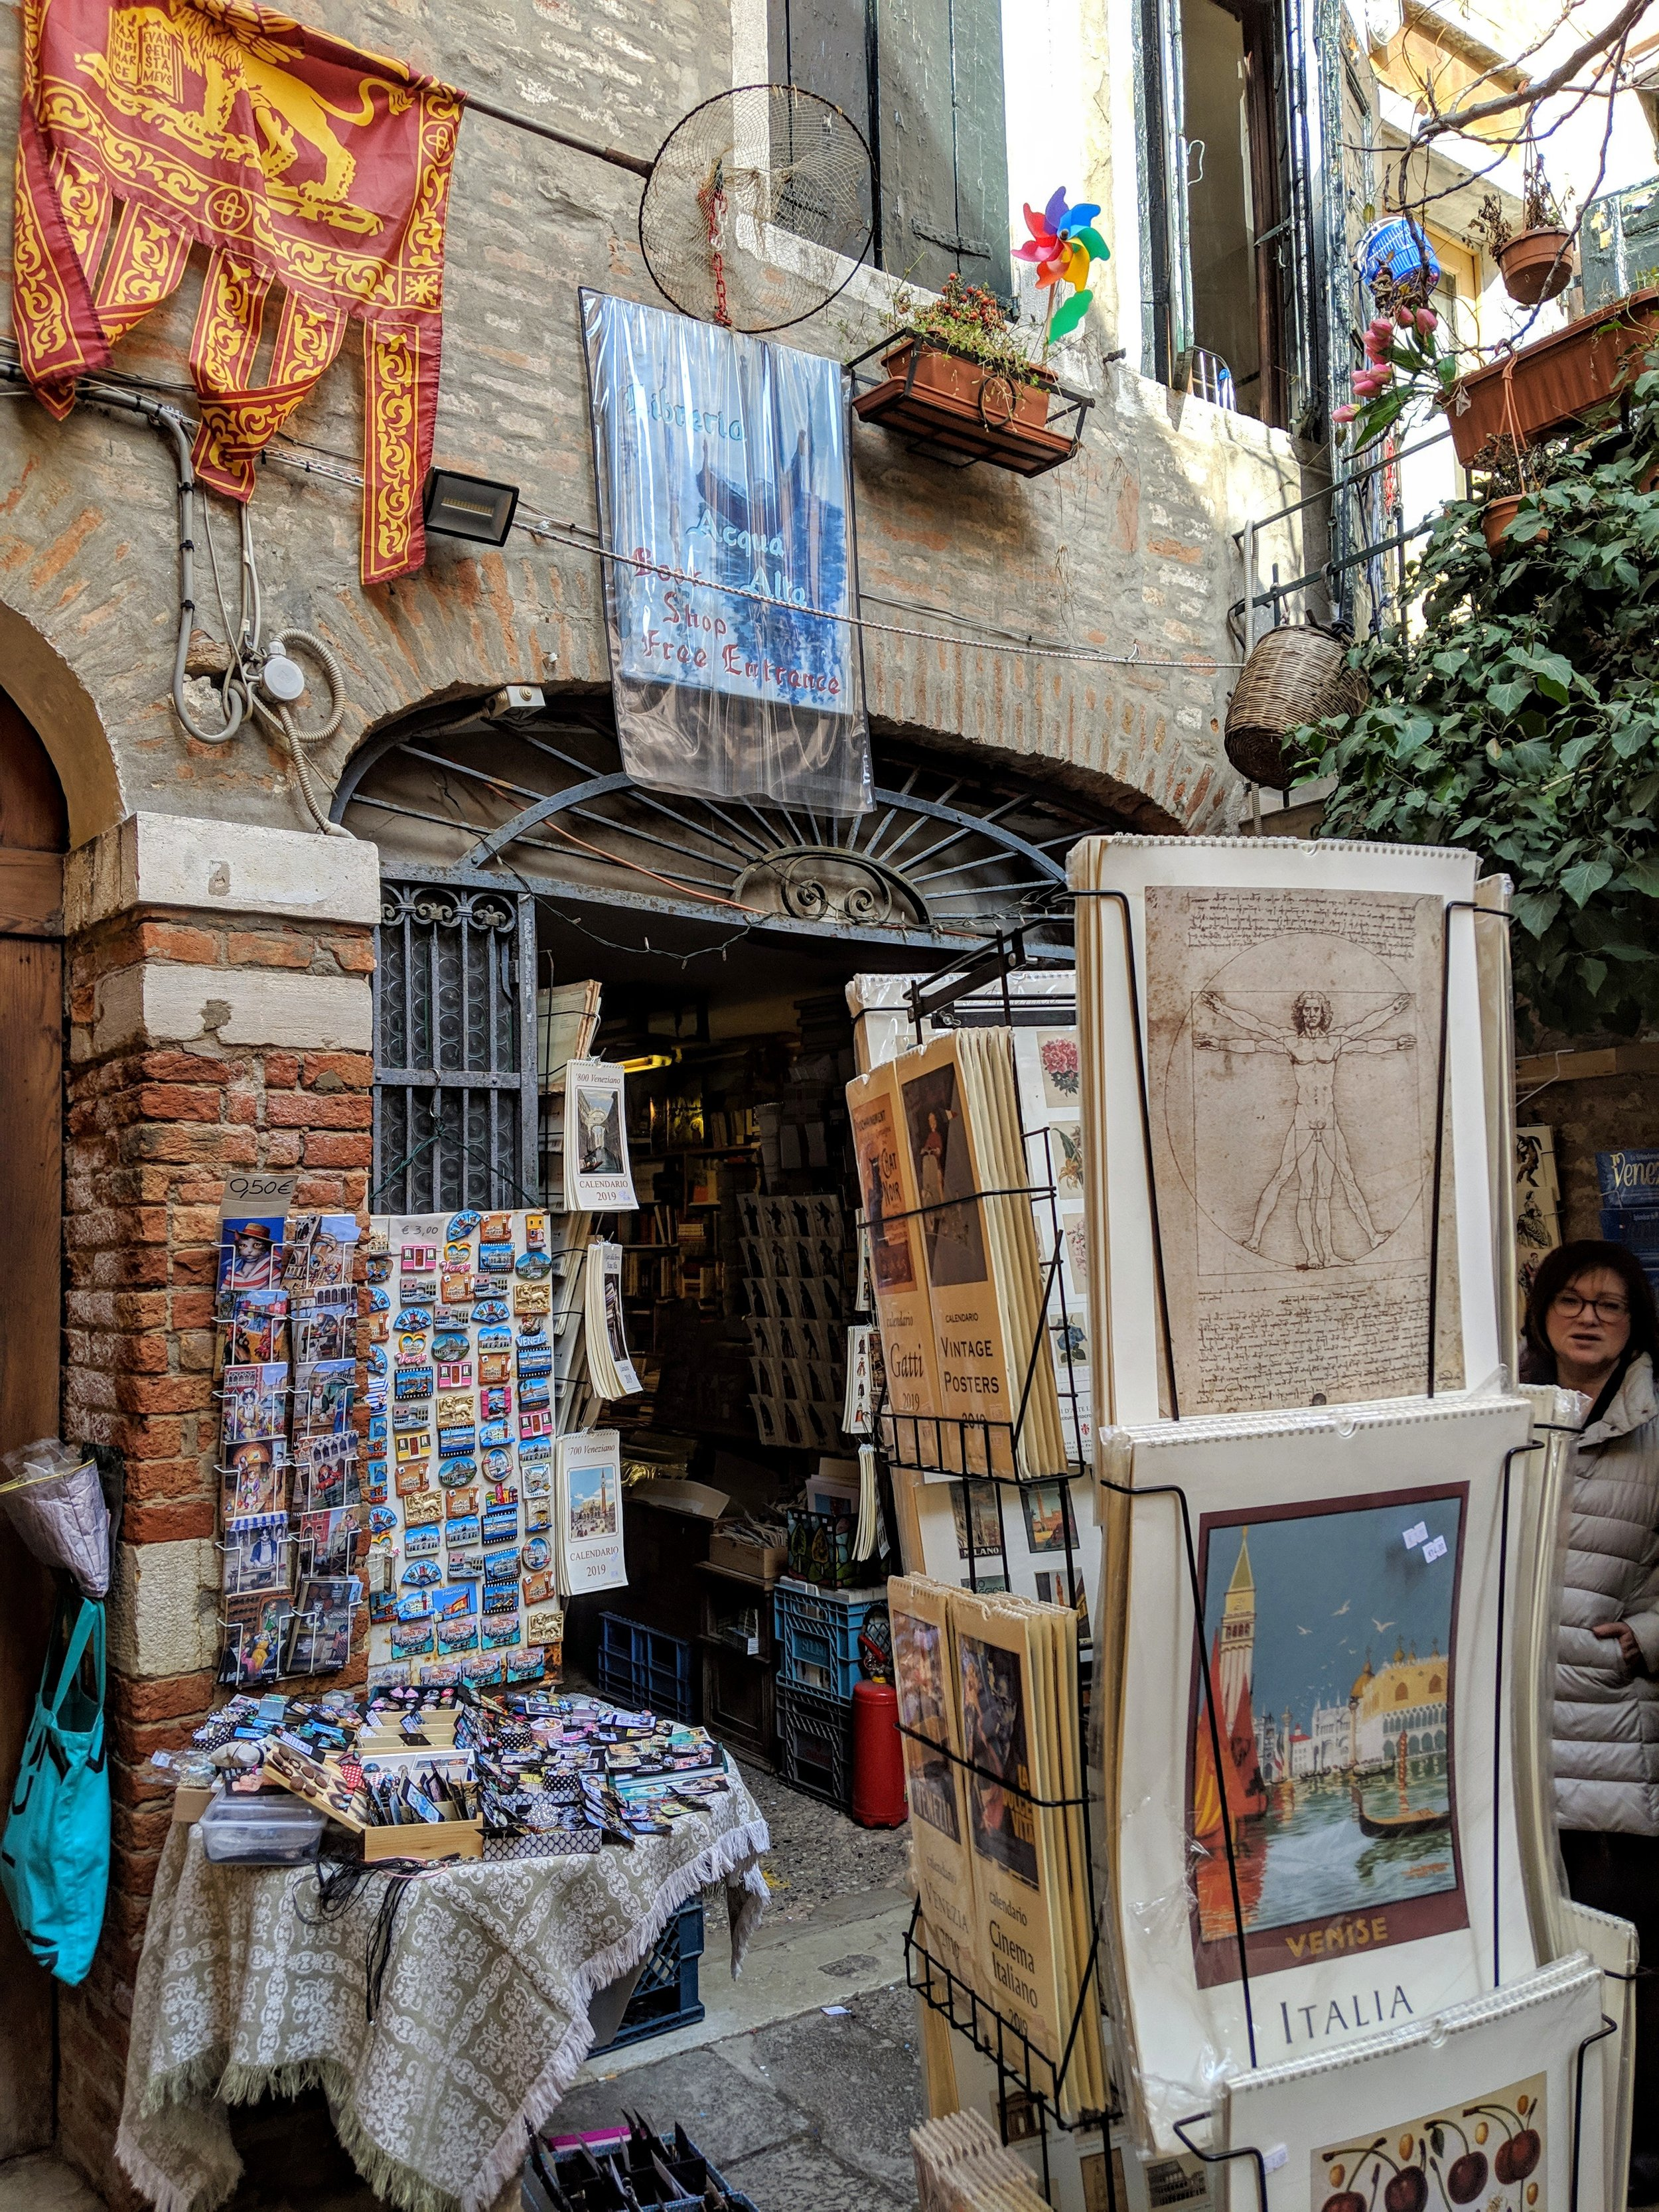 Libreria Acqua Alta Bookstore - Had you ever dreamed of reading Heaminguway's book with a view of a gondolier passing by? That's the spot. To save books from water damage, they keep it in bathtubs